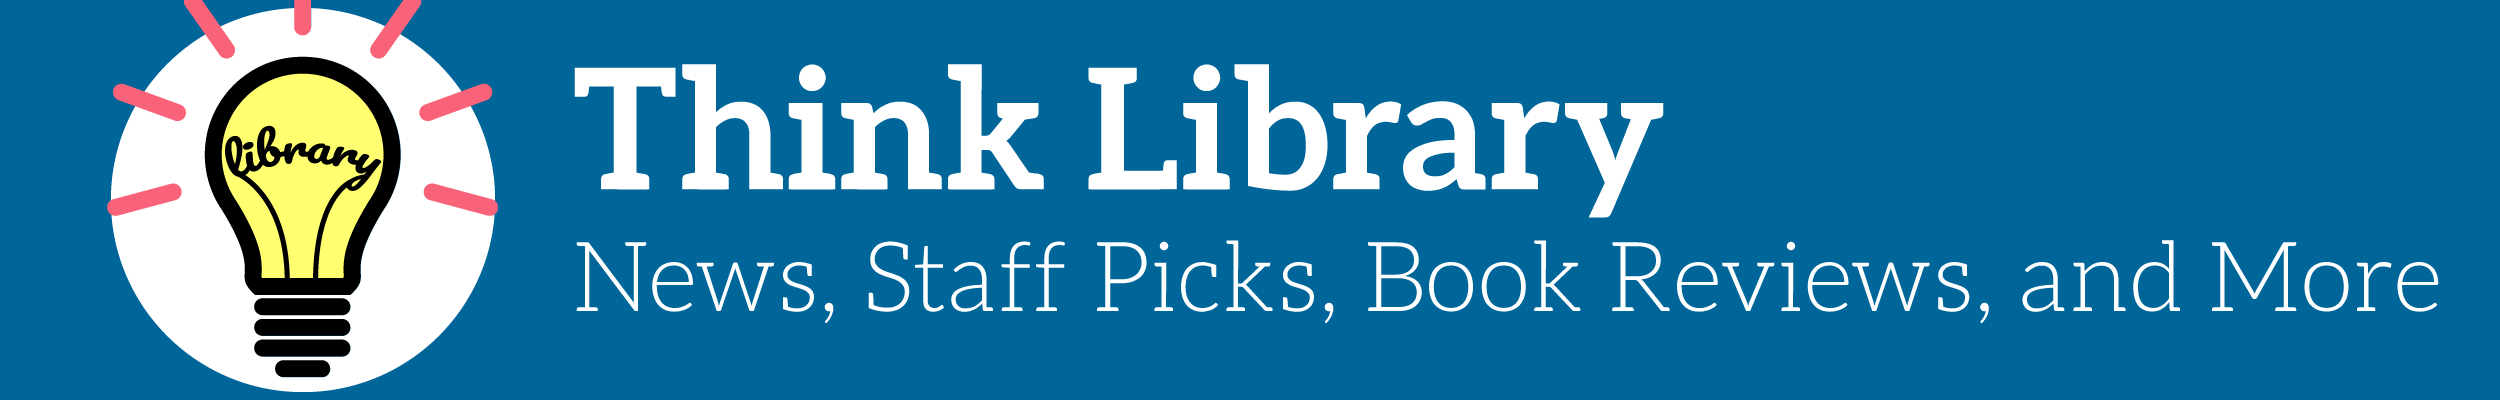 Think Library - News, Staff Picks, Book Reviews, More!